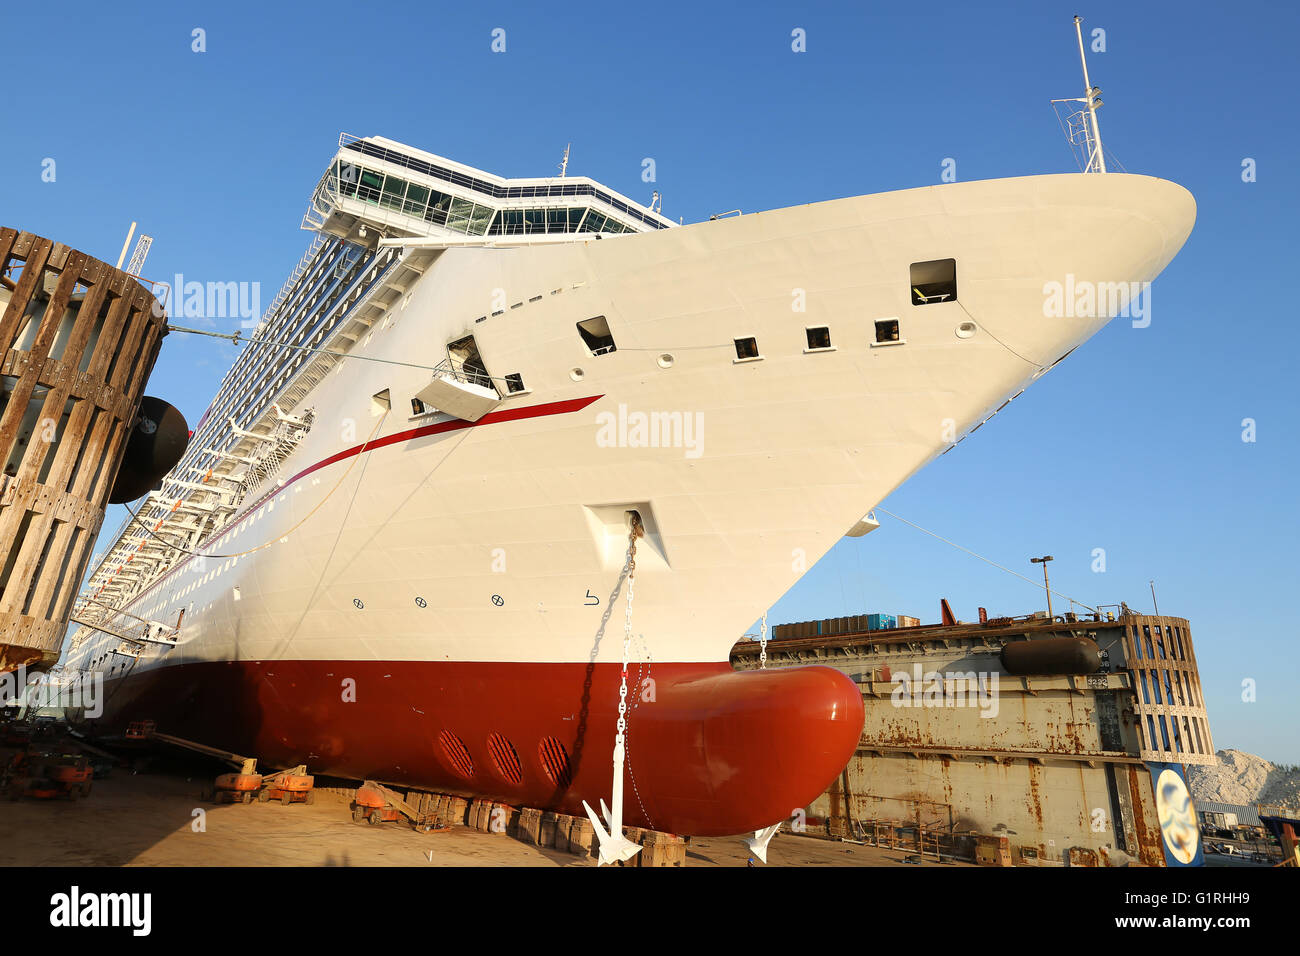 cruise Ship in dry dock - Stock Image